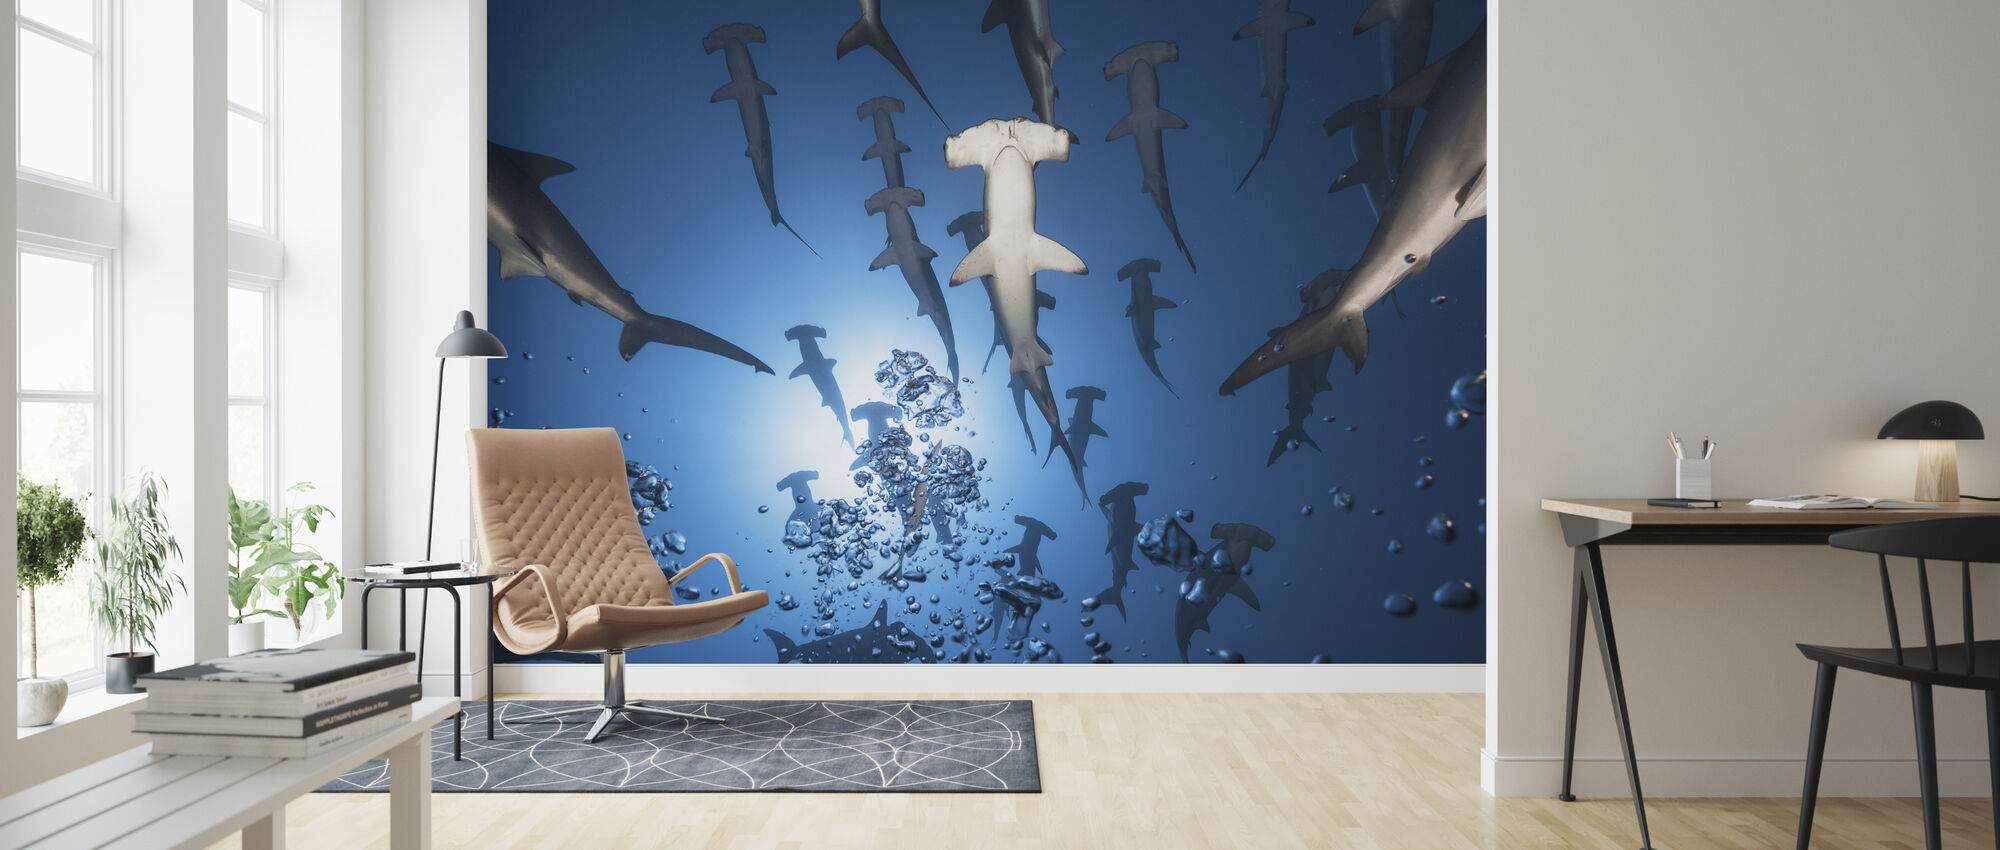 Hammerhead Shark - Wallpaper - Living Room